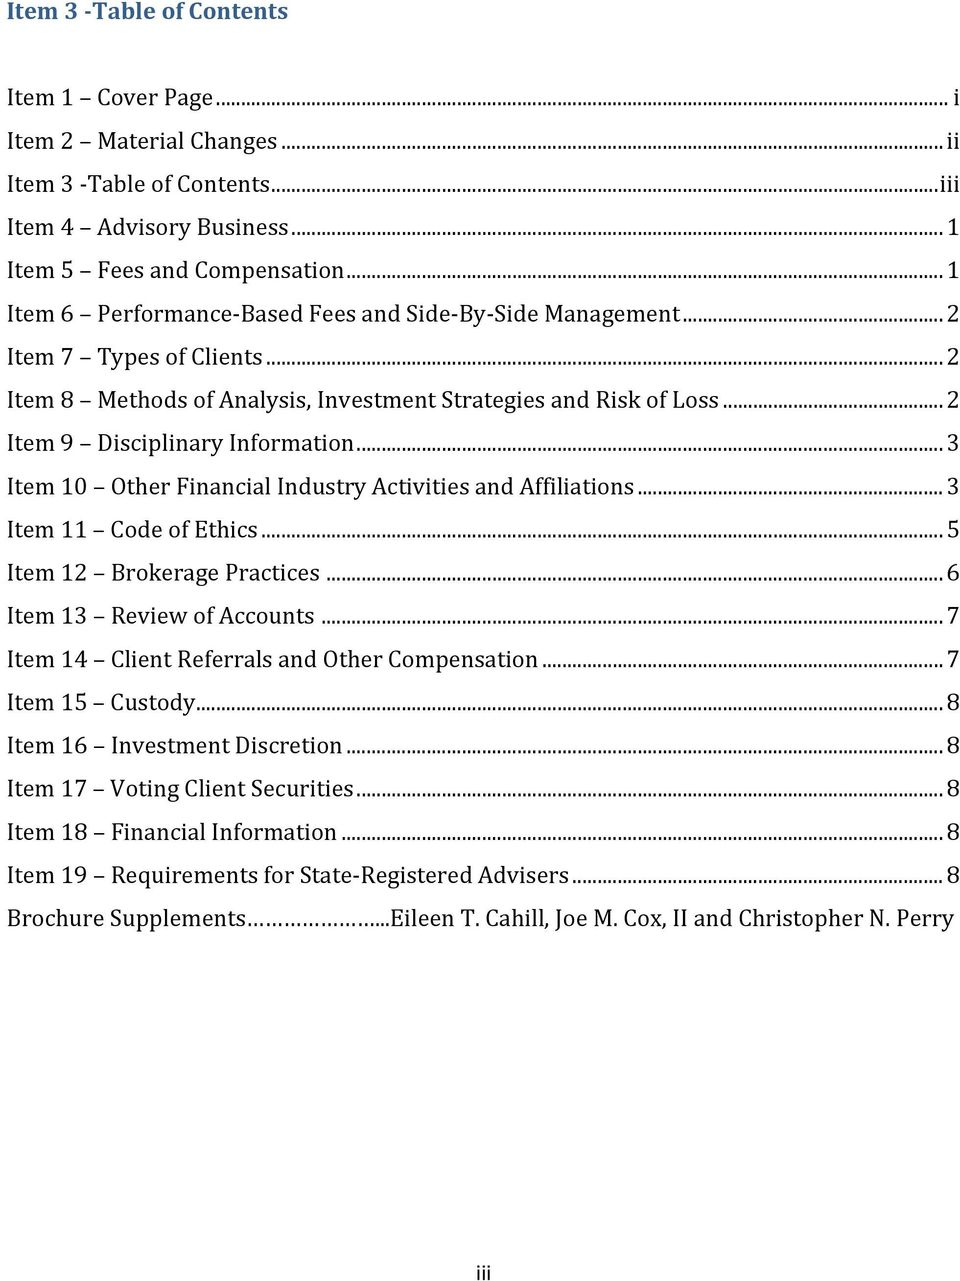 .. 3 Item 10 Other Financial Industry Activities and Affiliations... 3 Item 11 Code of Ethics... 5 Item 12 Brokerage Practices... 6 Item 13 Review of Accounts.